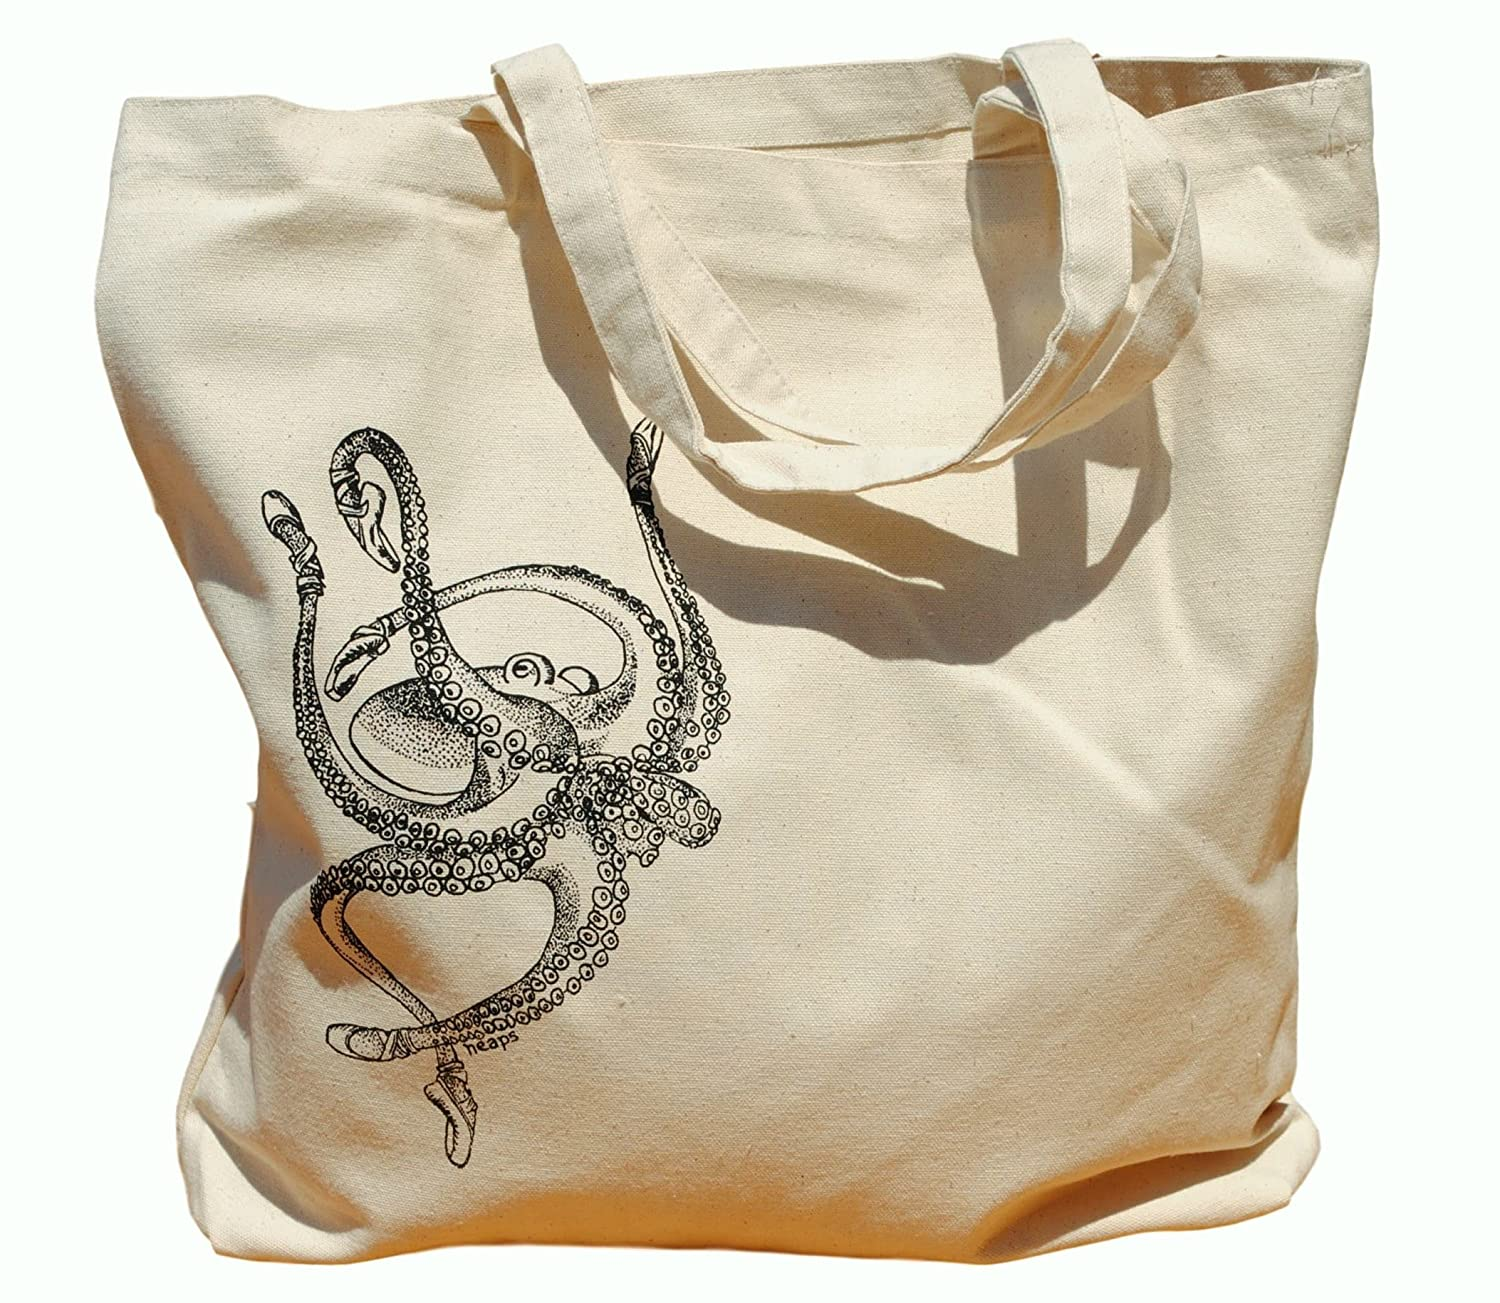 Canvas Tote Bag - Hand Printed Ballet Octopus - Market Travel Beach Shopper Grocery School